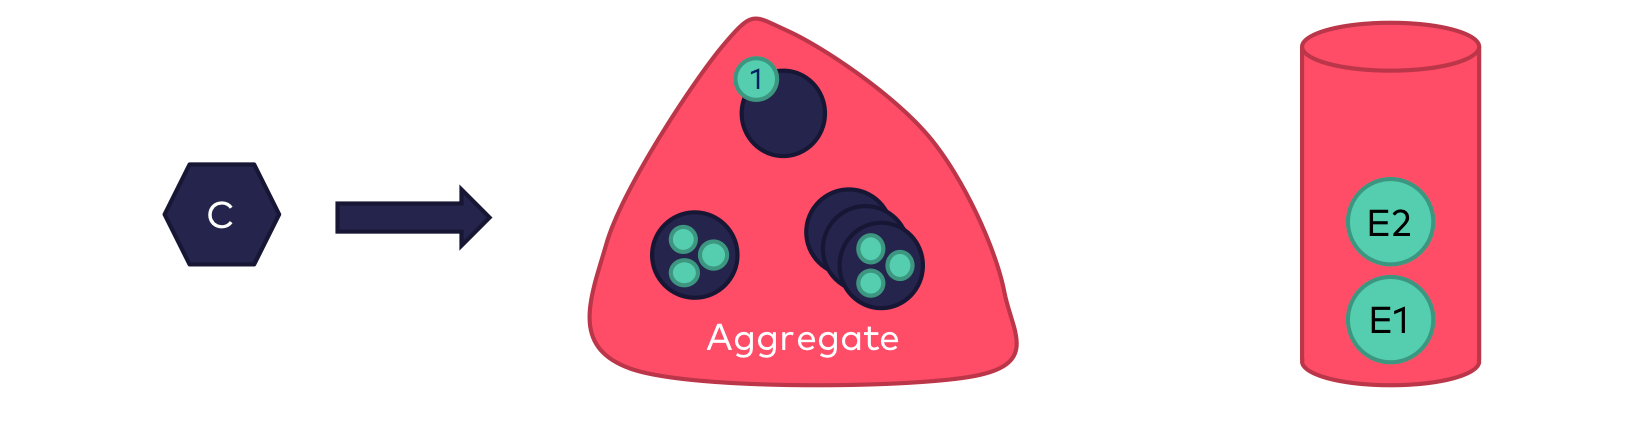 The invocation is accepted by the aggregate, validated against its current state and processed, i.e. the respective domain logic is executed. At that moment, no internal state of the aggregate is changed yet - this will only be done later when processing the event created during the invocation.